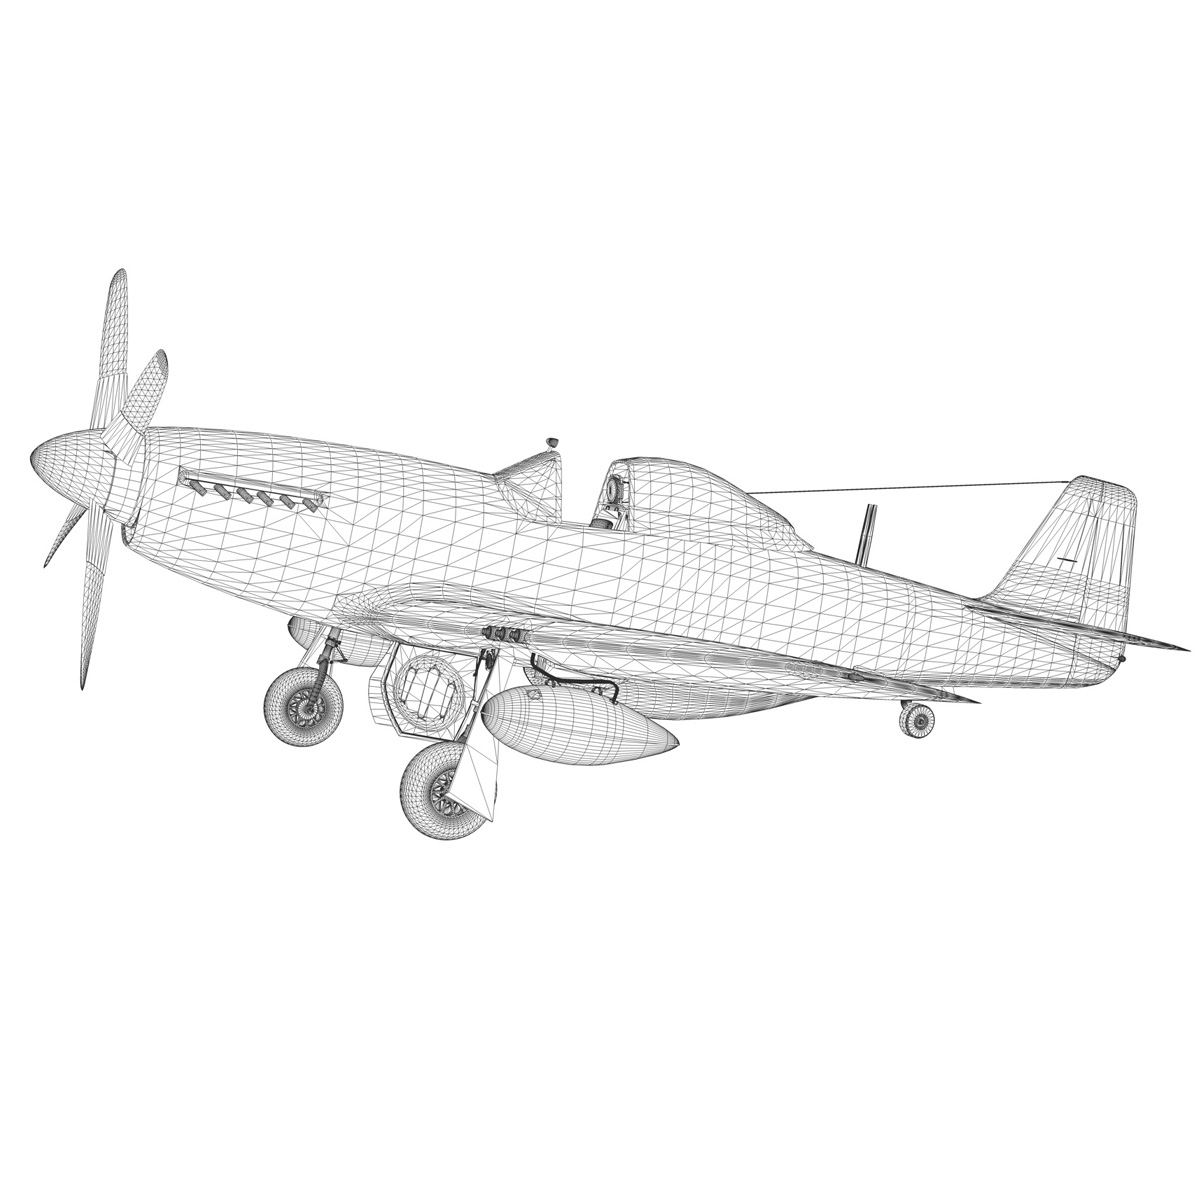 north american p-51d mustang – gunfighter 3d model fbx c4d lwo obj 269588